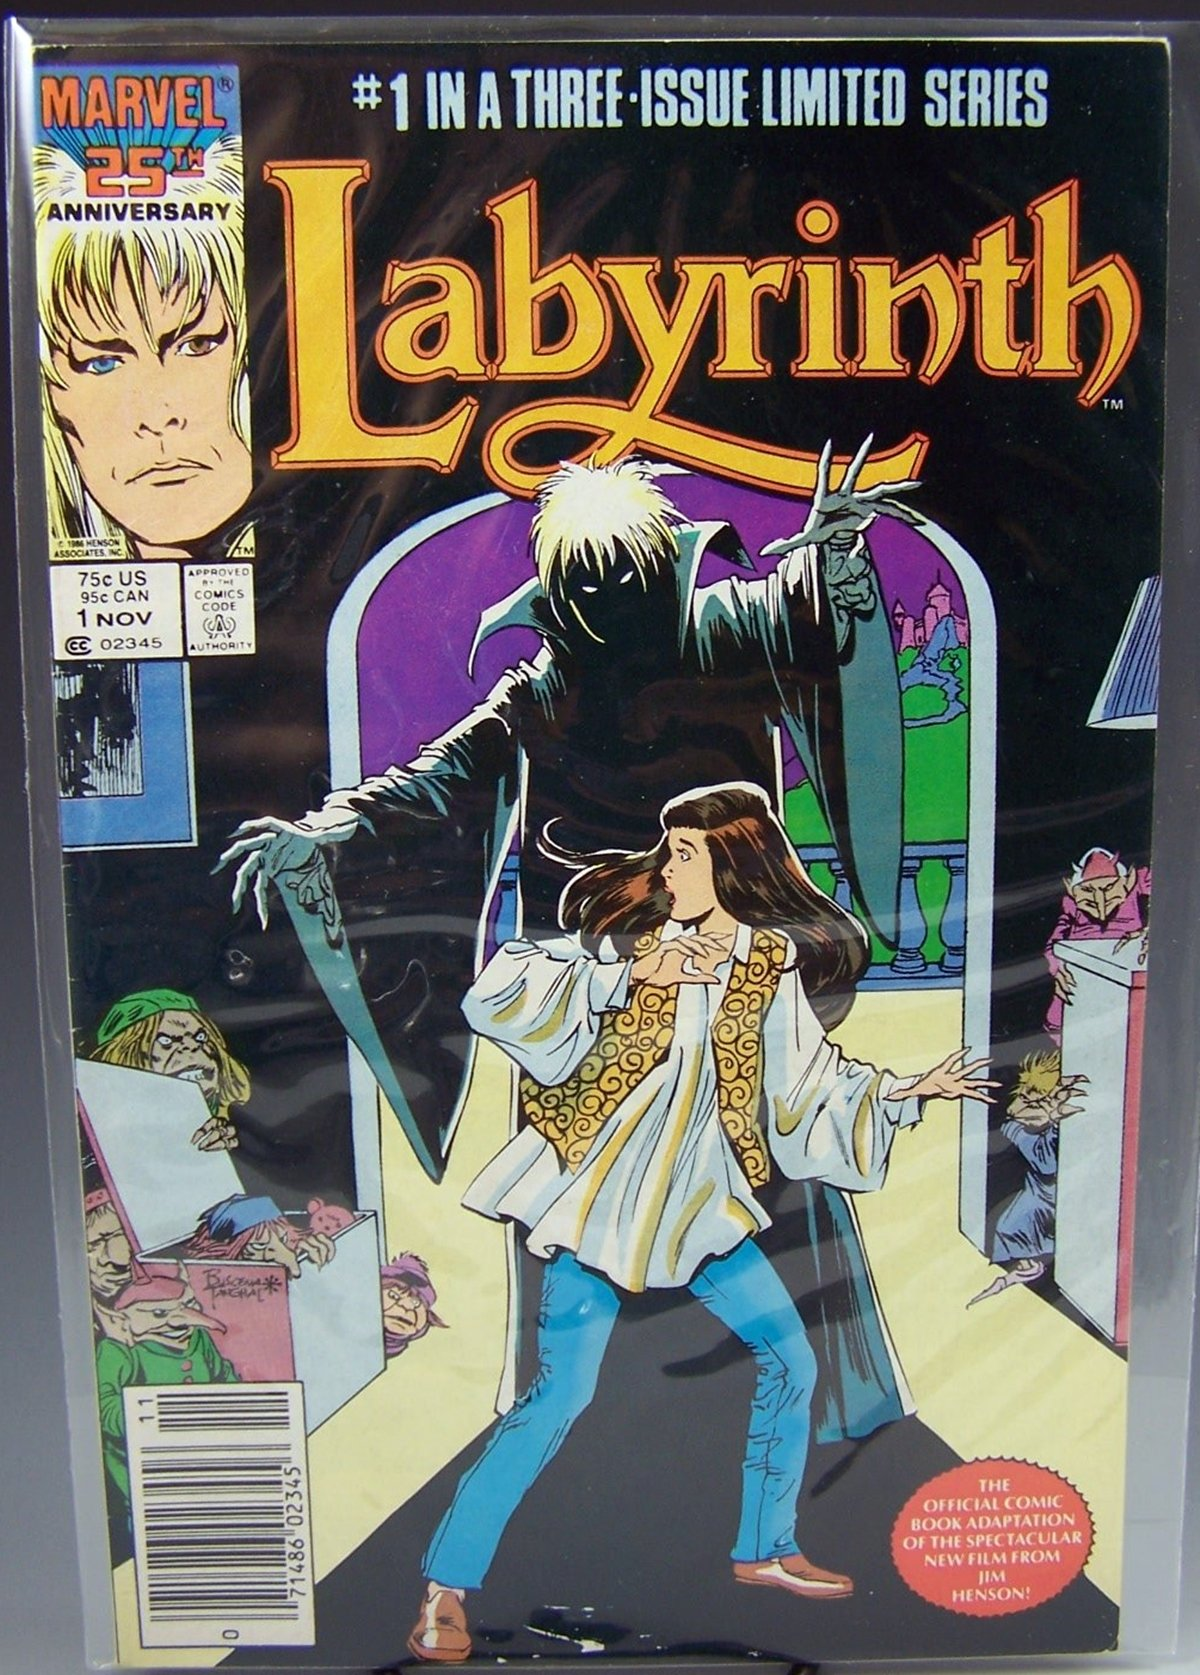 17 1 18 Things You Probably Didn't Know About Labyrinth